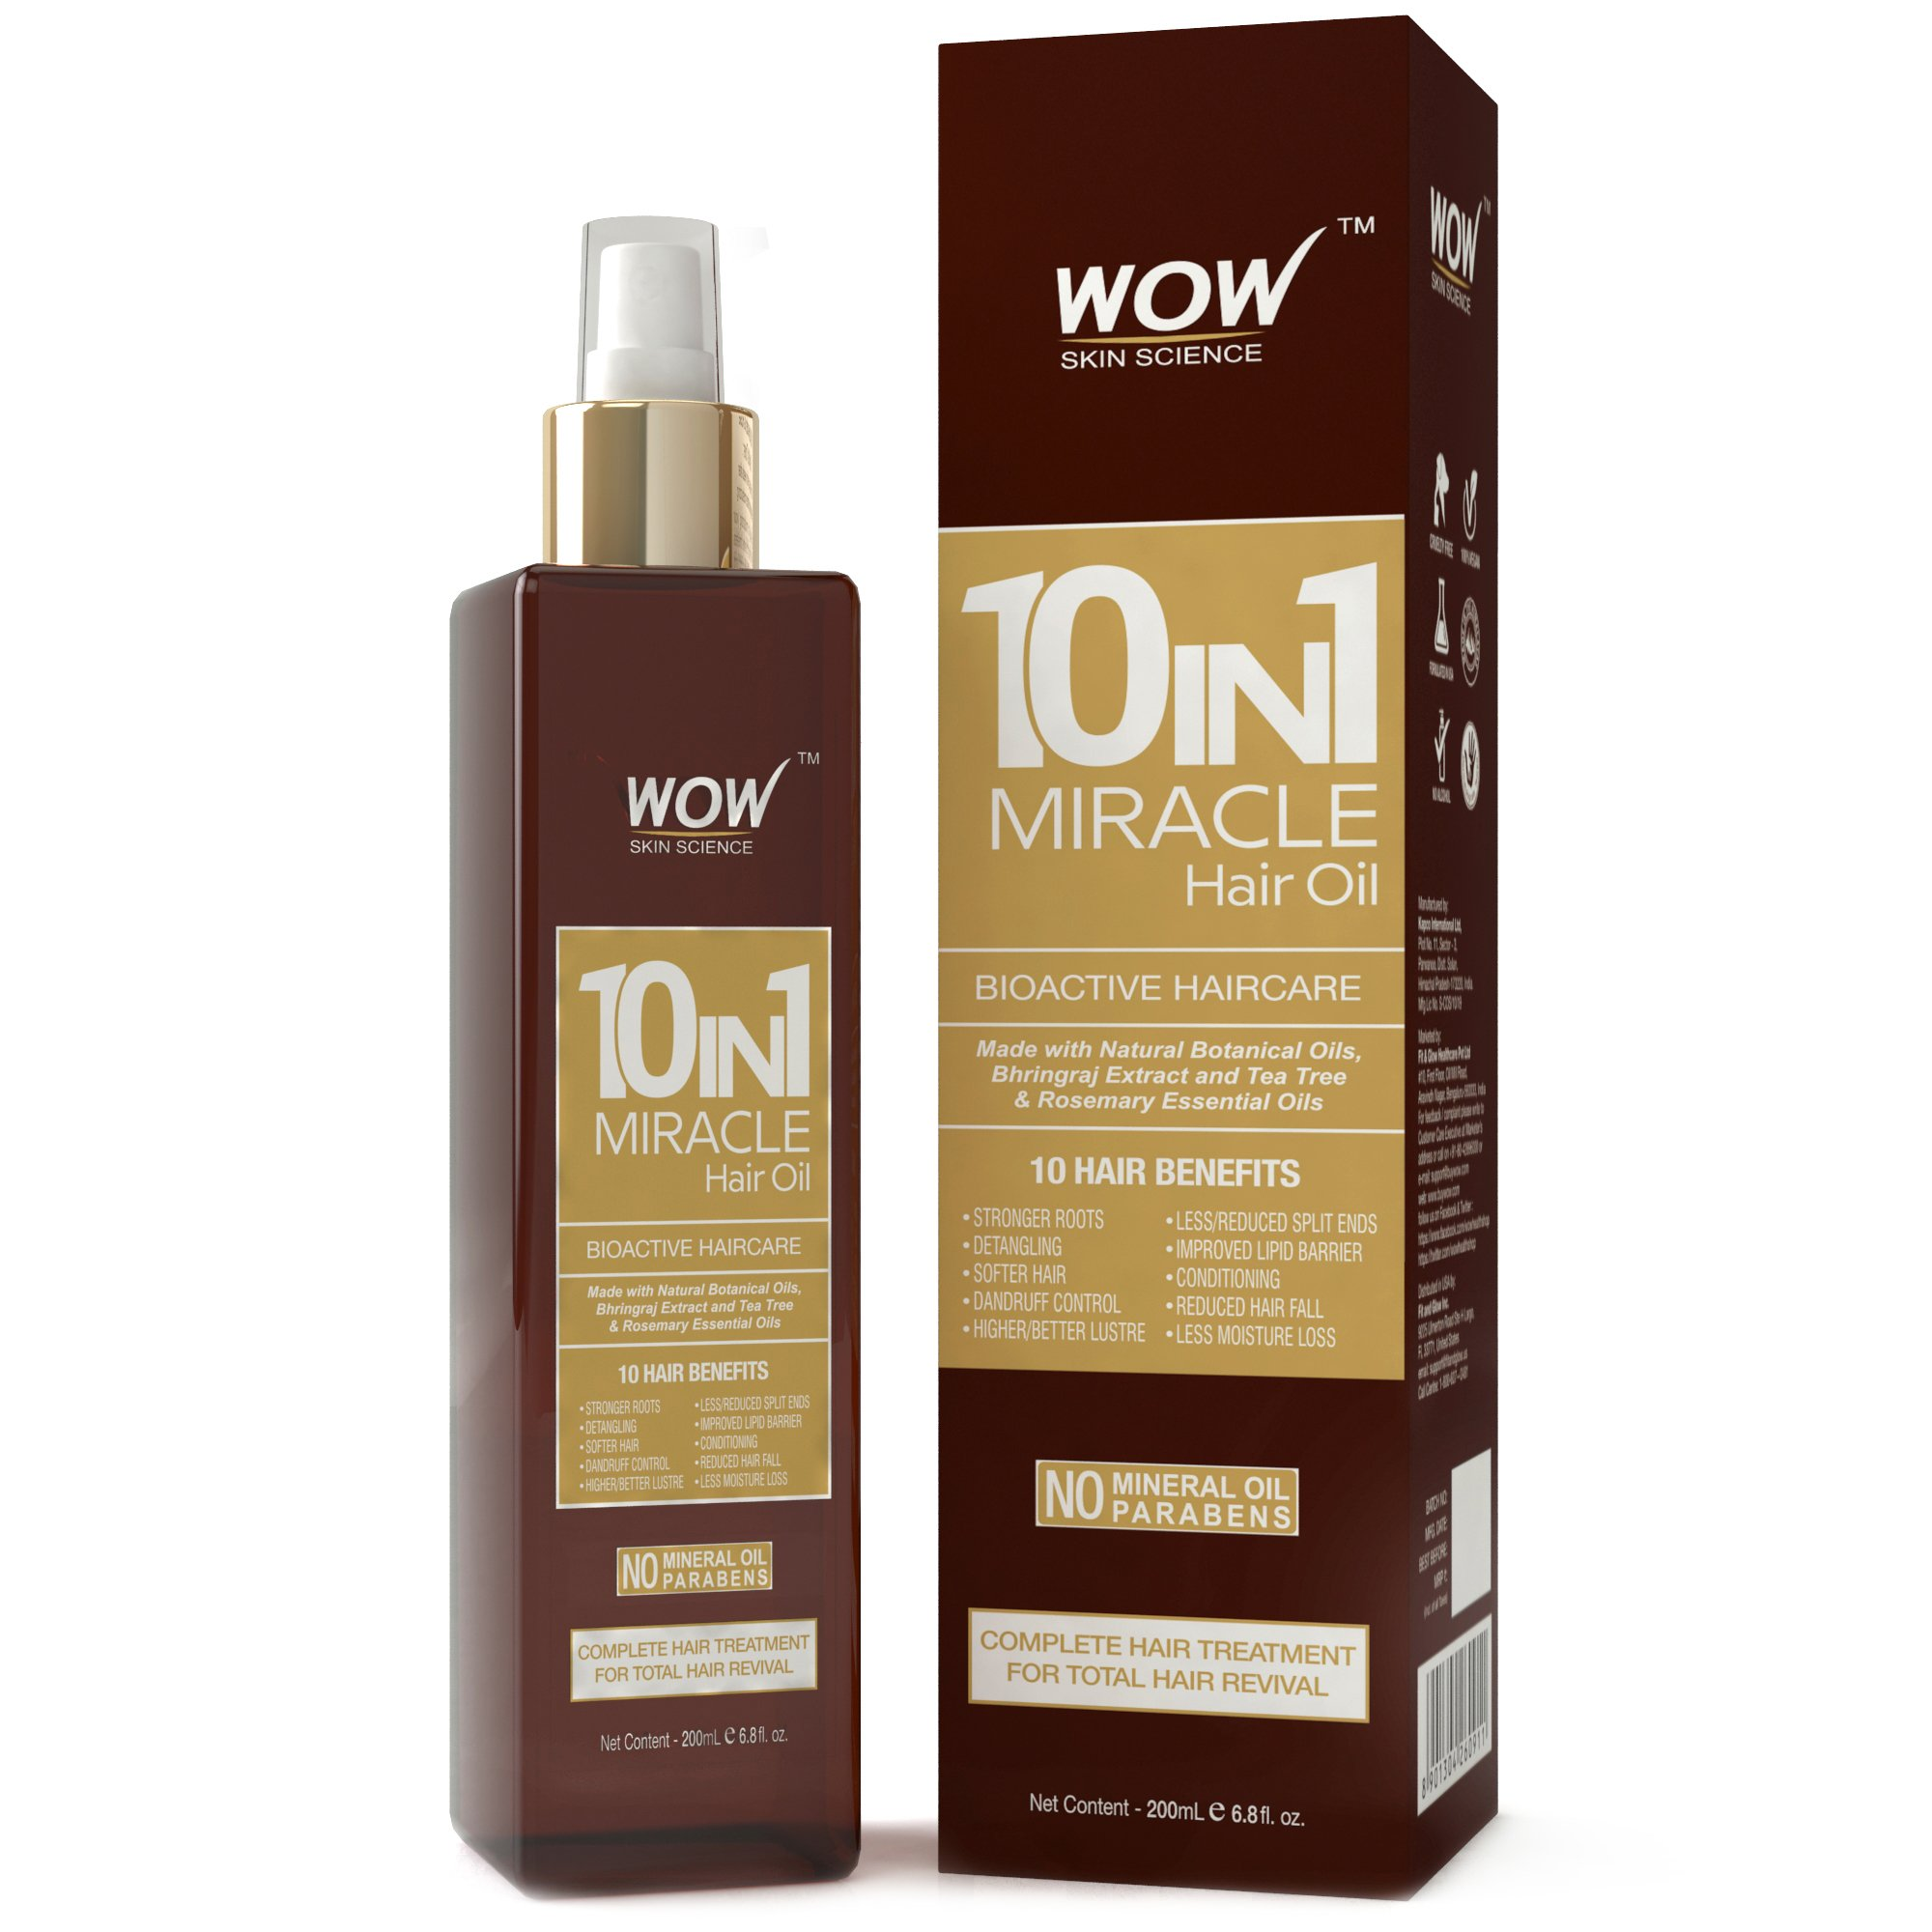 WOW 10 in 1 Miracle No Parabens and Mineral Oil Hair Oil, 200ml product image